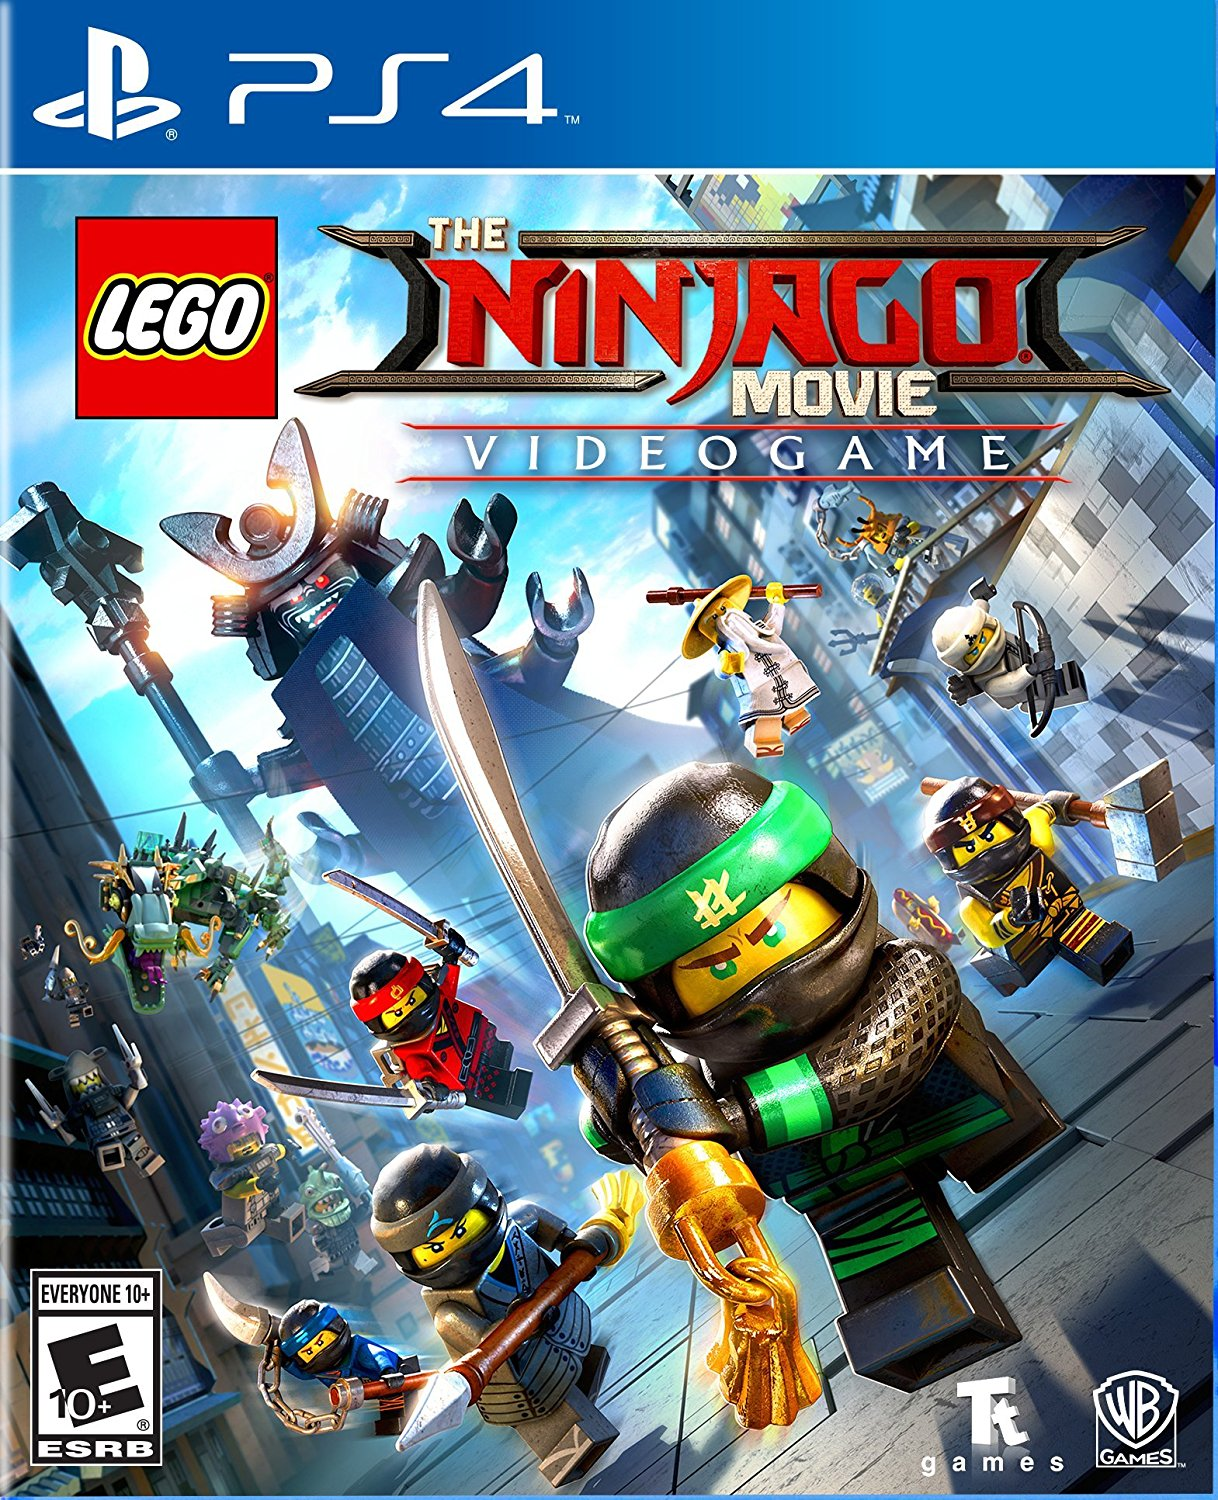 PS4 The Lego Ninjago Movie Videogame (PlayStation 4)